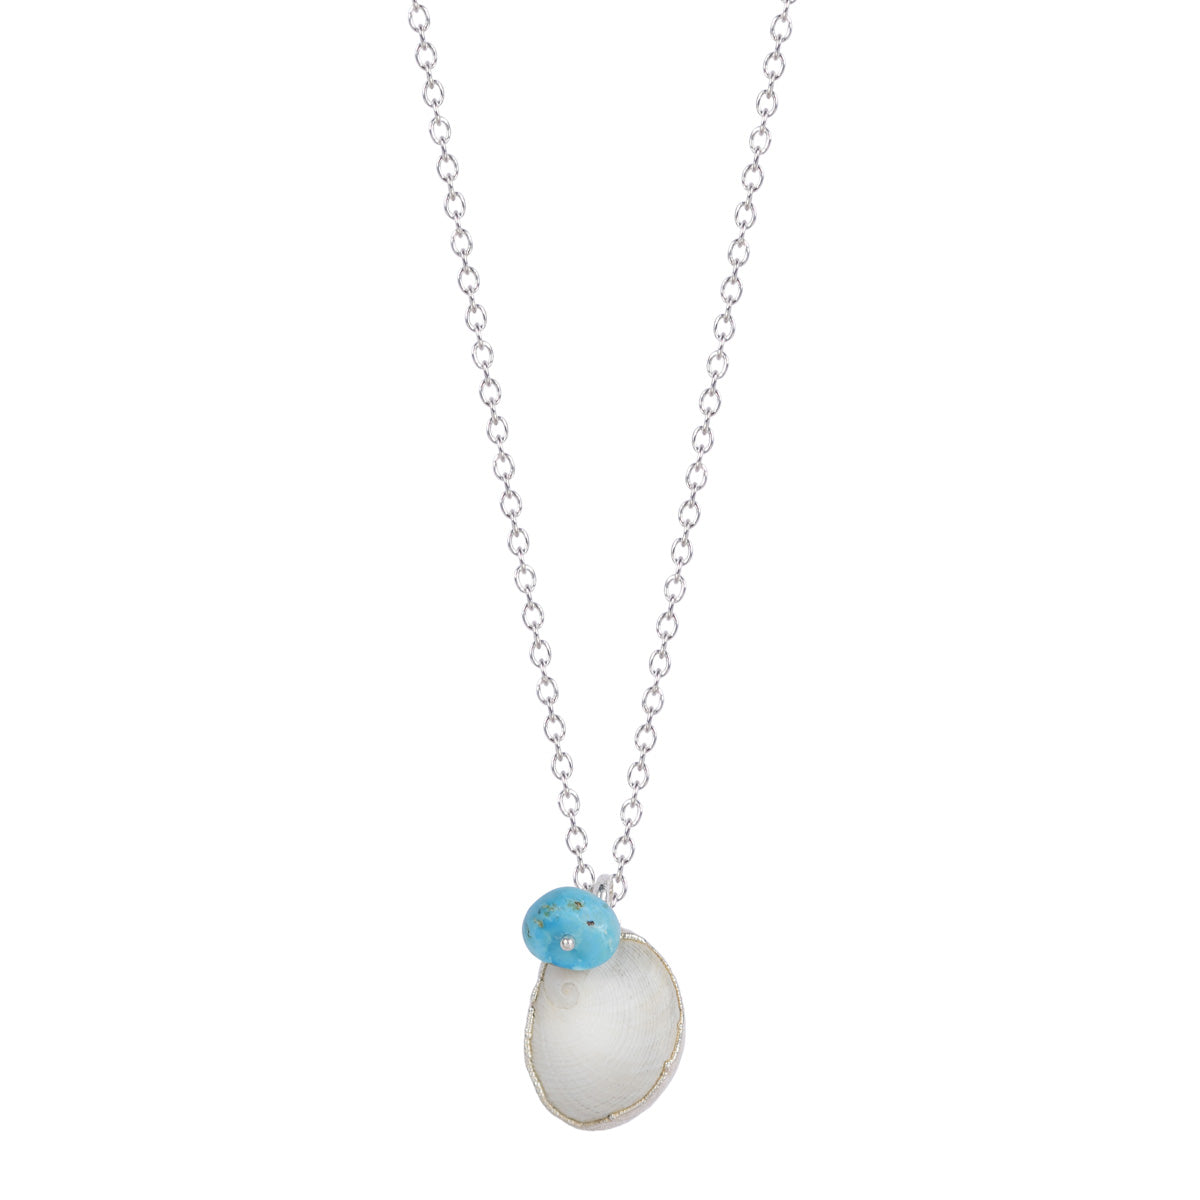 Silver Shell Necklace with Turquoise Bead on Chain